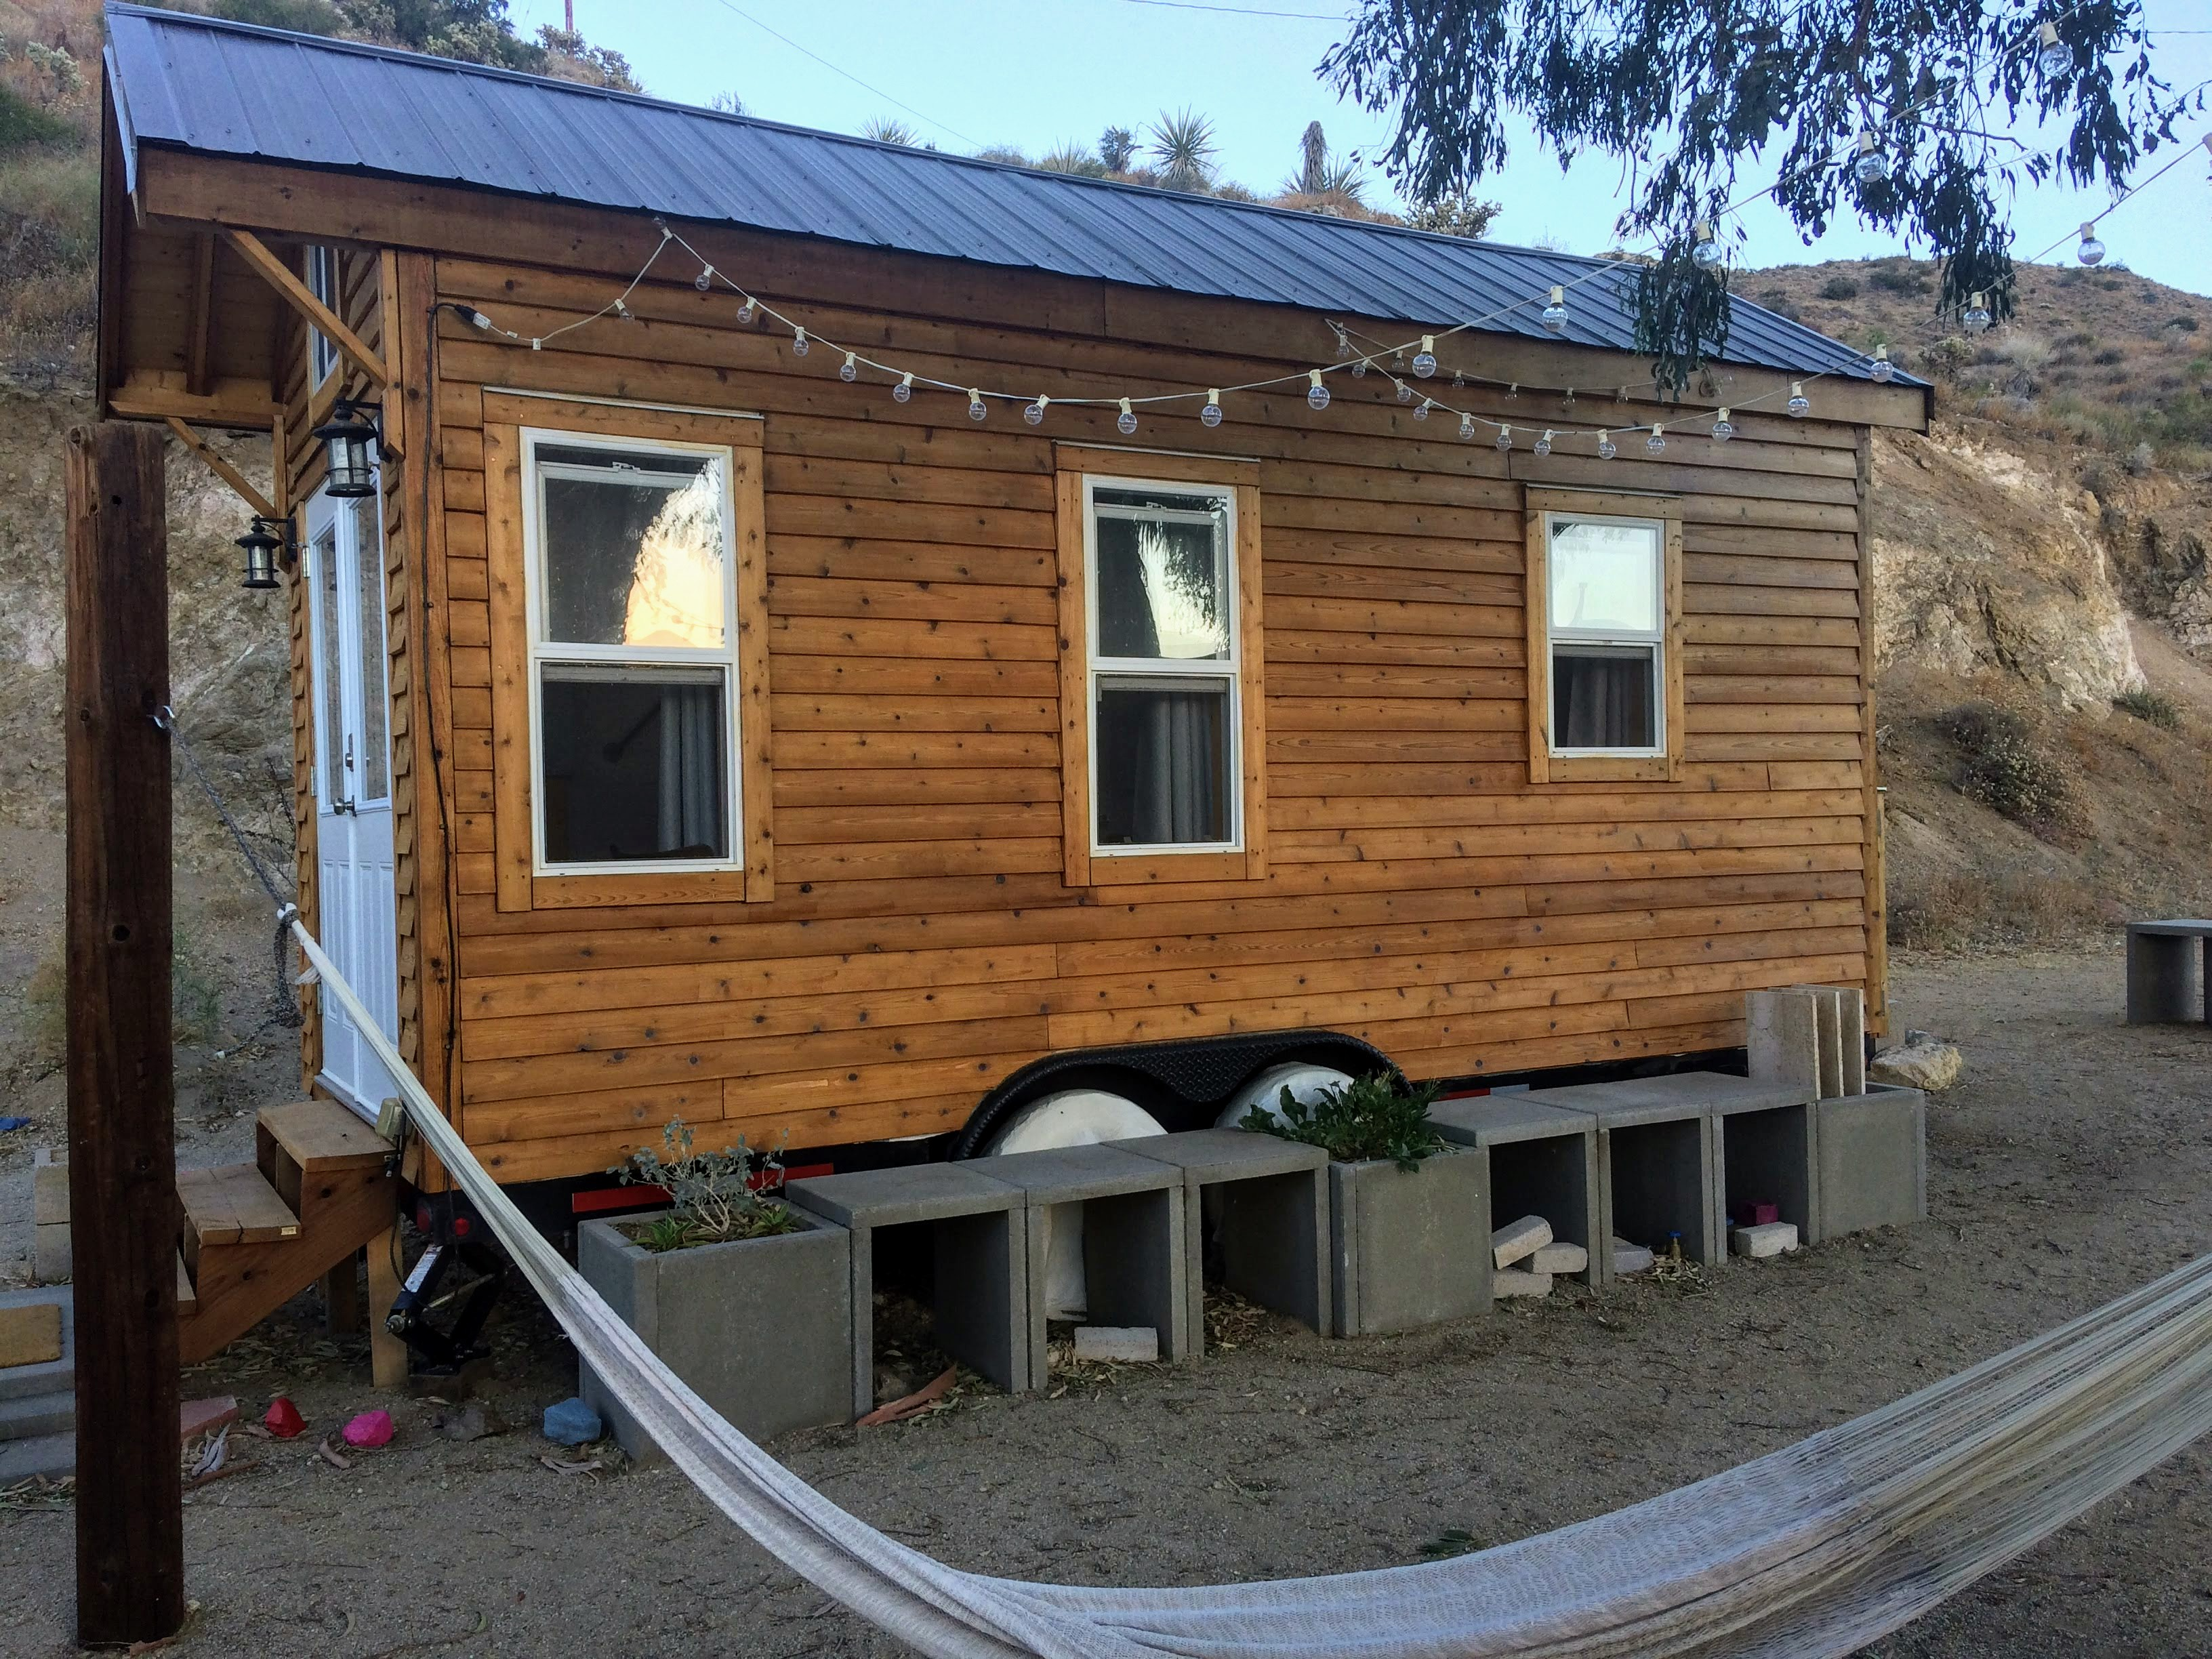 tiny travel chick unique things to do in southern california paper moon outpost tiny house hammock